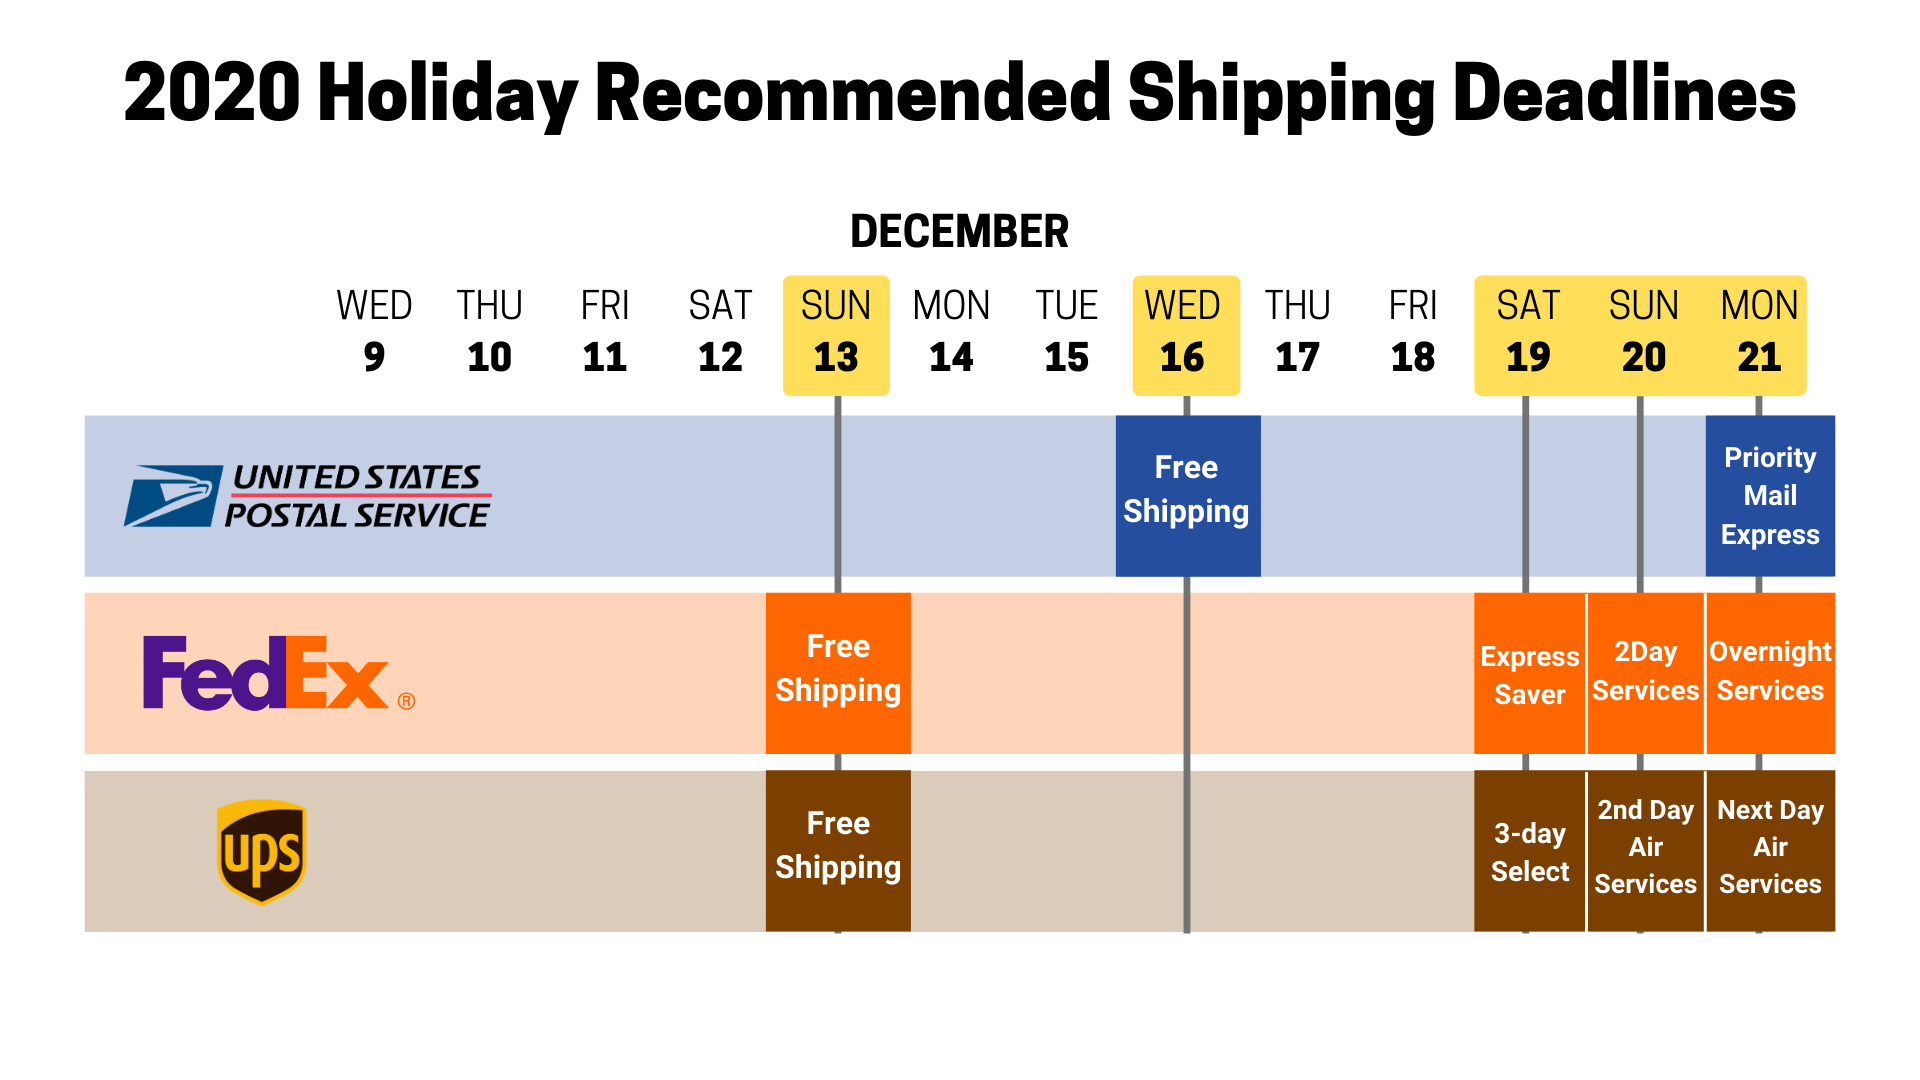 ORDER BY DECEMBER 20 12PM TO RECEIVE BY DECEMBER 25 VIA USPS PRIORITY MAIL